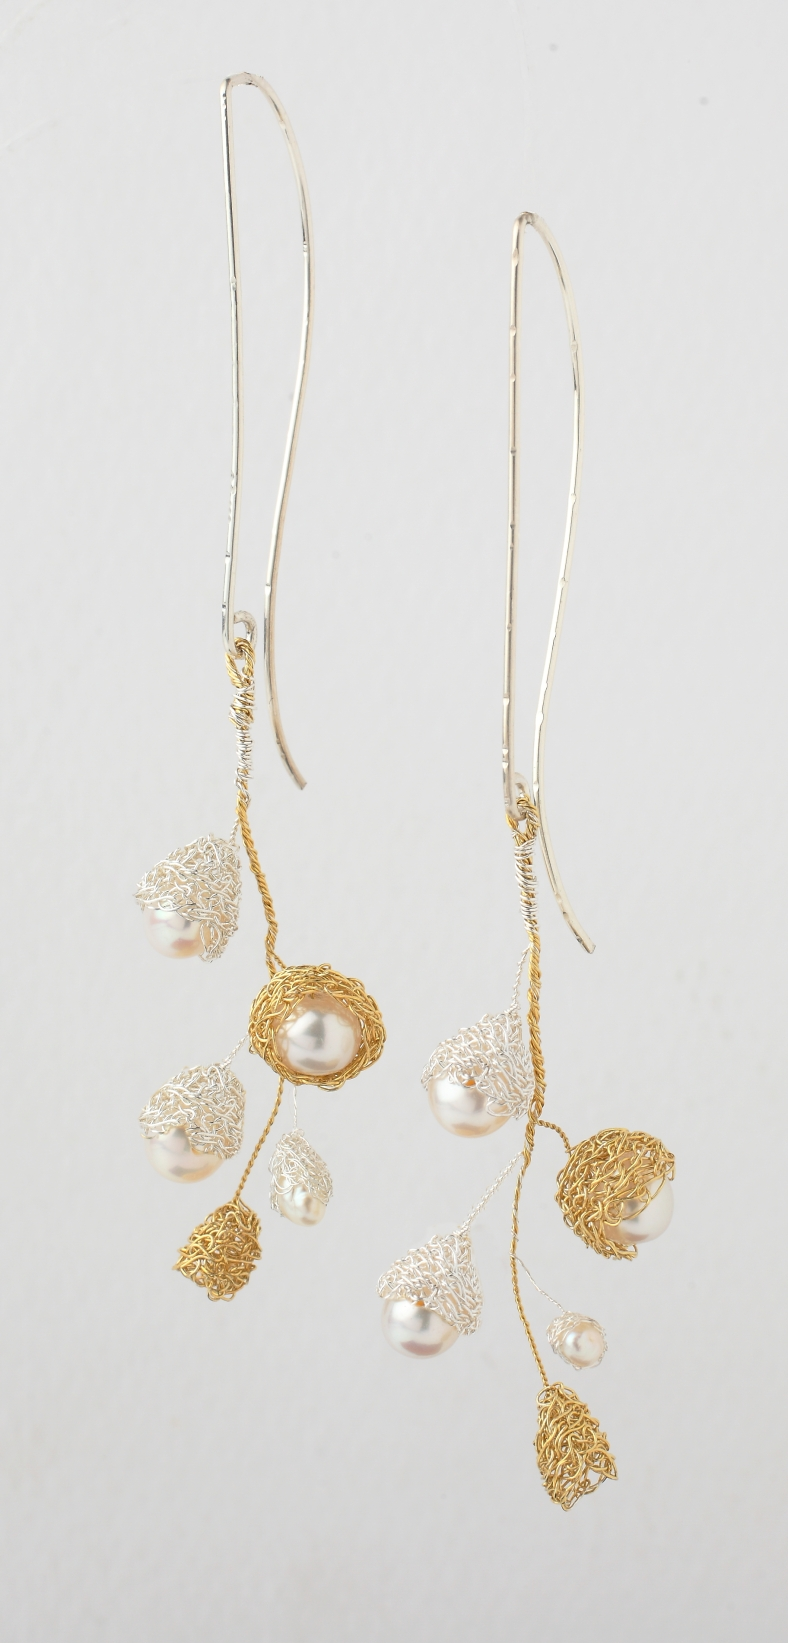 Baya 5 bud long drop earrings